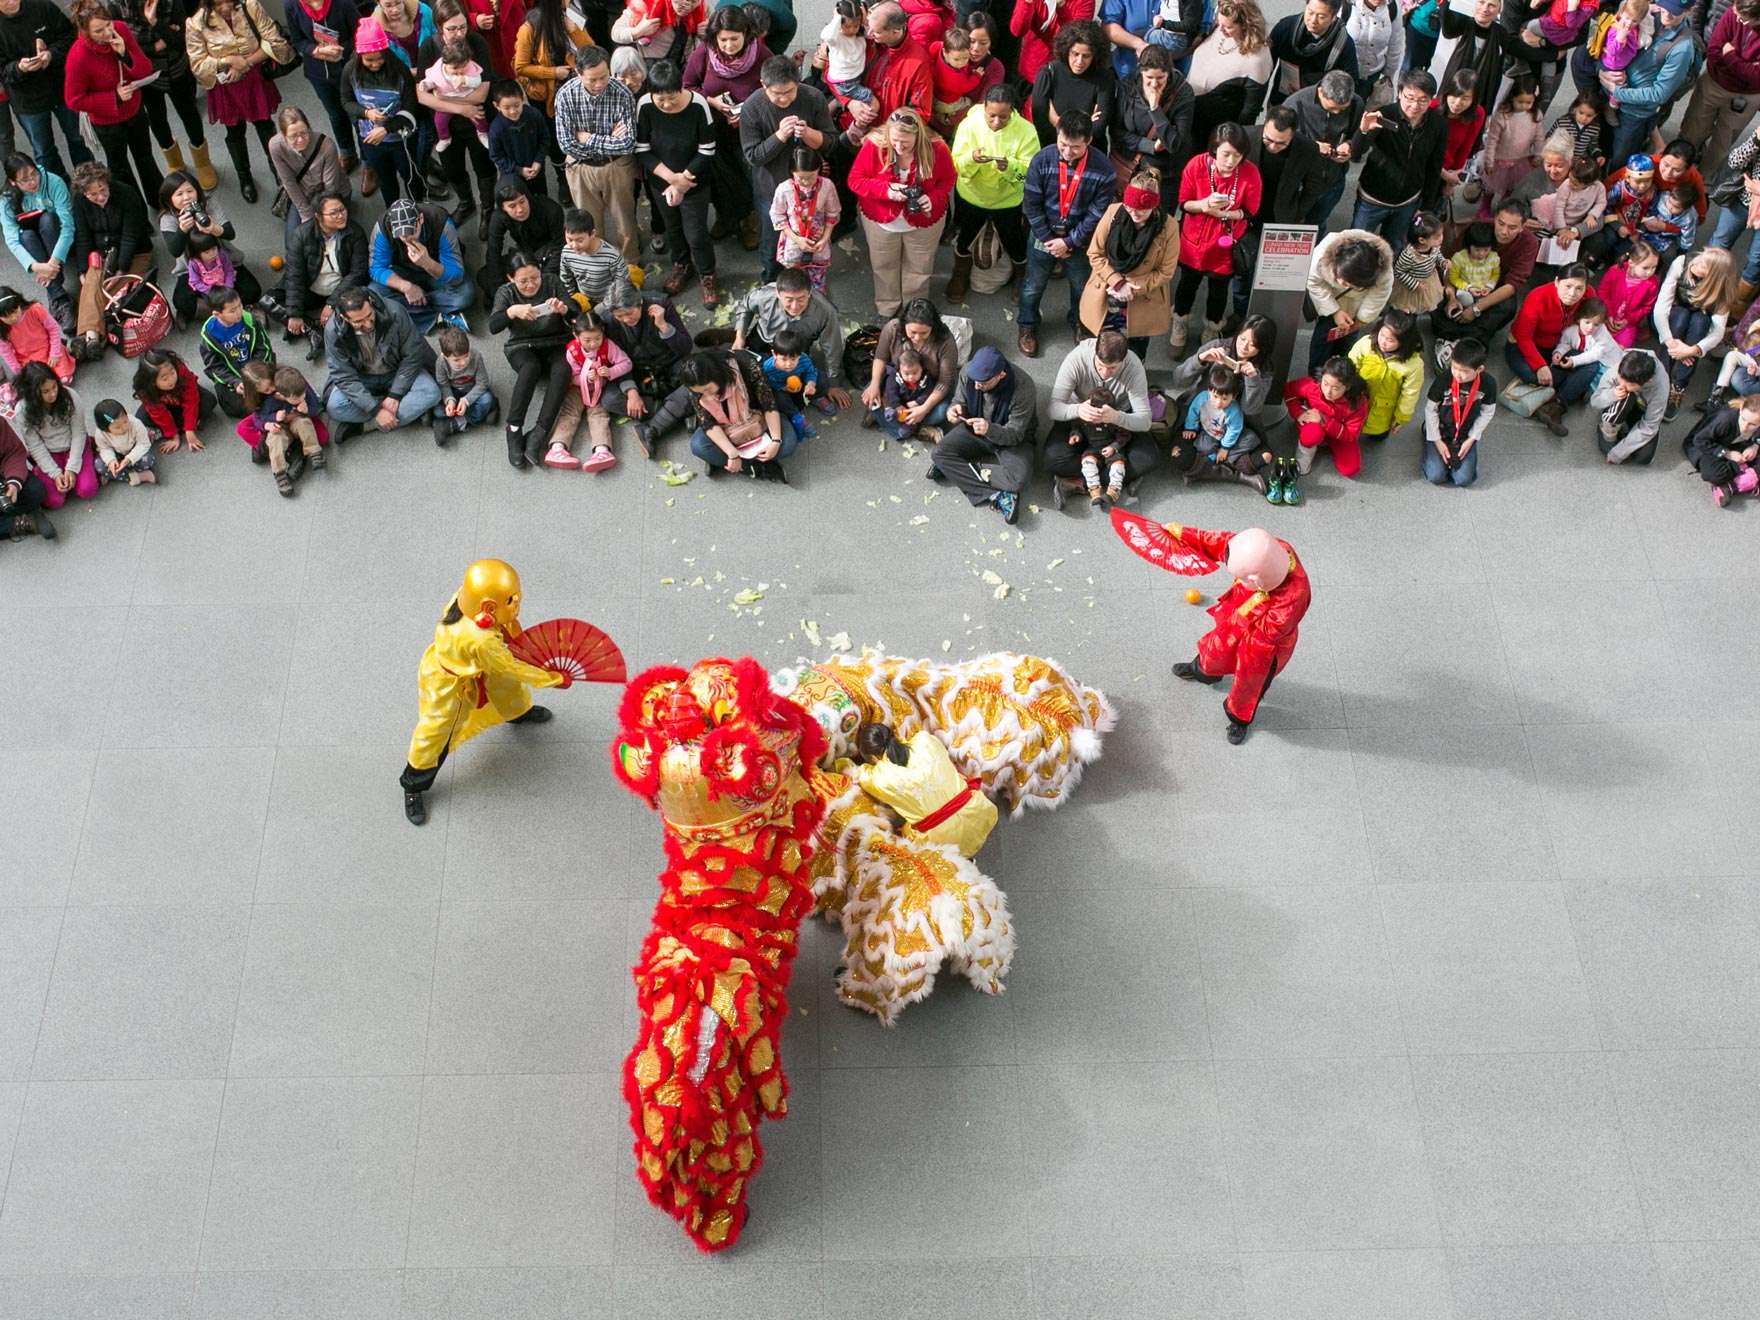 Crowd of visitors watching lion dance performance in Shapiro Family Courtyard; photograph taken from above